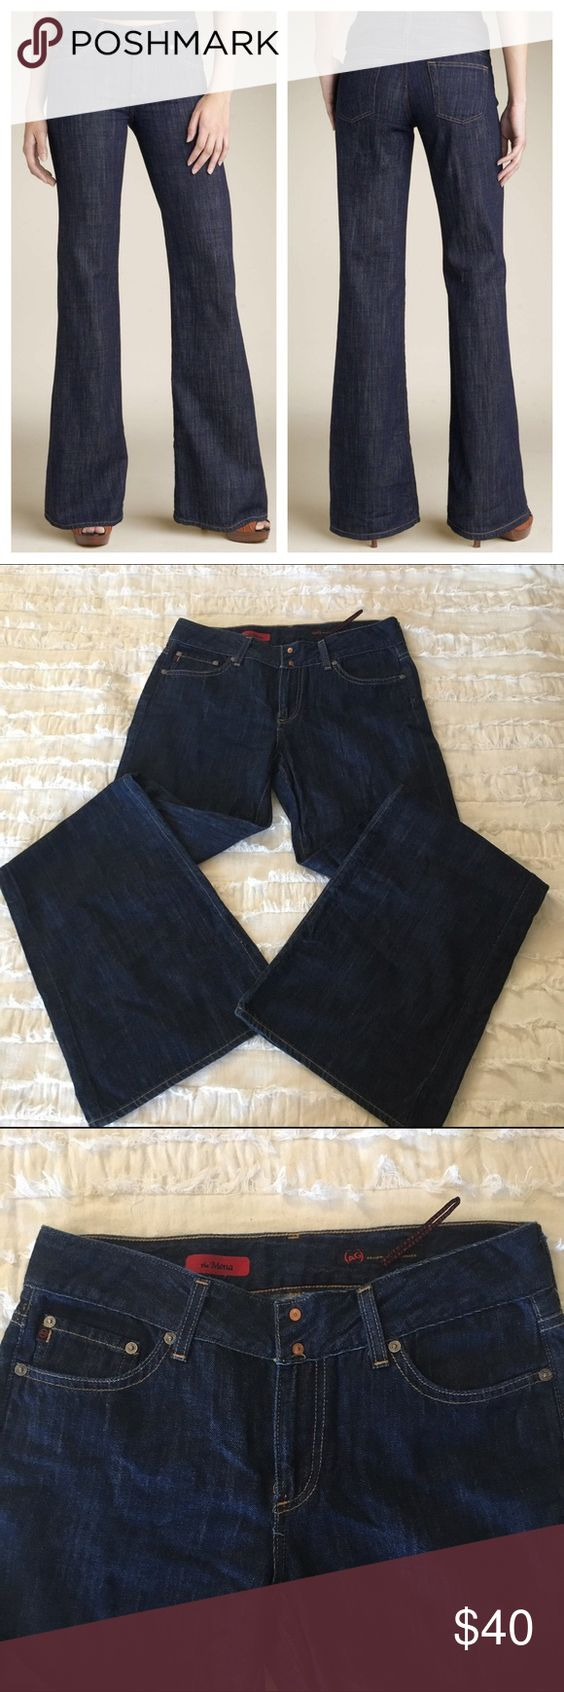 """AG   Adriano Goldschmied {The Mona} Widelegs Size 30R wide-leg, dark denim jeans in great used condition. Approx measurements: 32"""" waist // 33.5"""" inseam // 43.5"""" length. No trades or pp. **covershot is a stock photo, last three are the actual item** AG Adriano Goldschmied Jeans Flare & Wide Leg"""